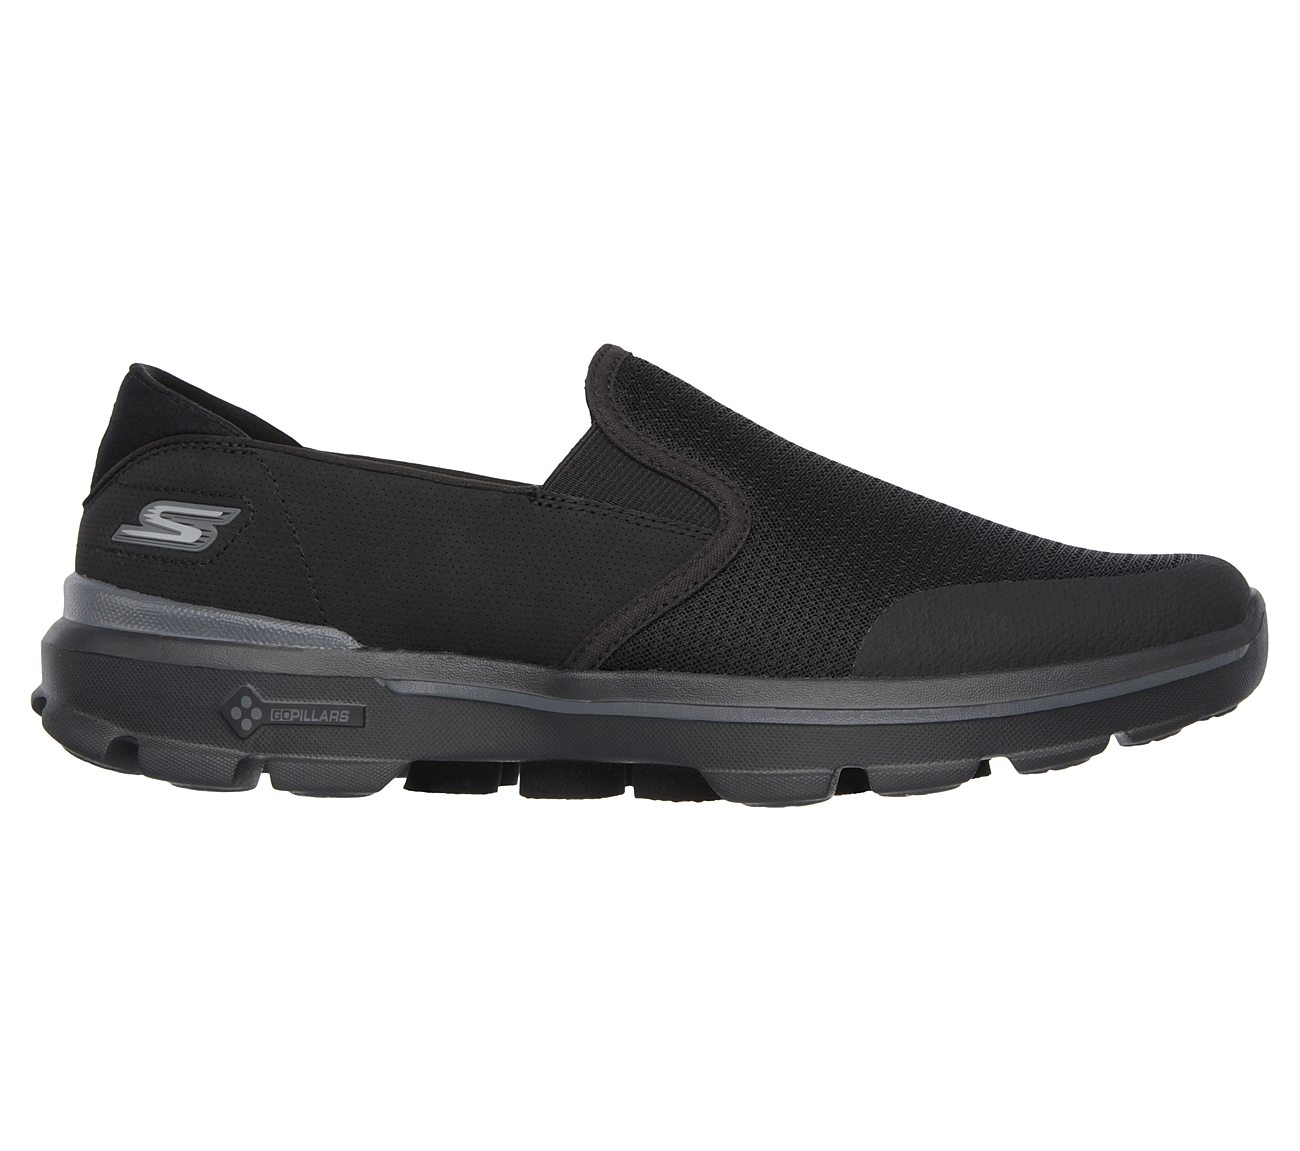 15a6d8ce38008 Skechers Go Walk 3 Charge Mens Shoes Review - Style Guru  Fashion ...